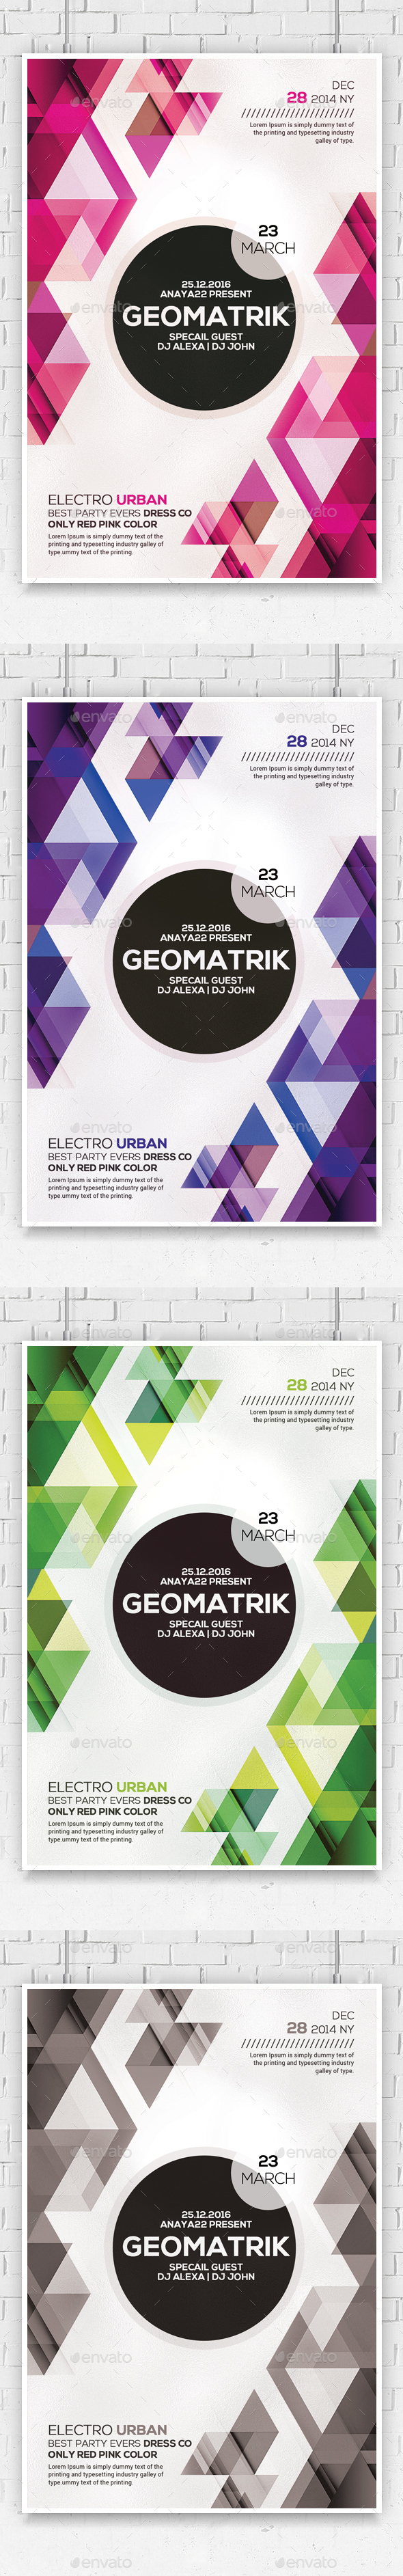 Minimal Geometric Flyer Psd Template - Clubs & Parties Events